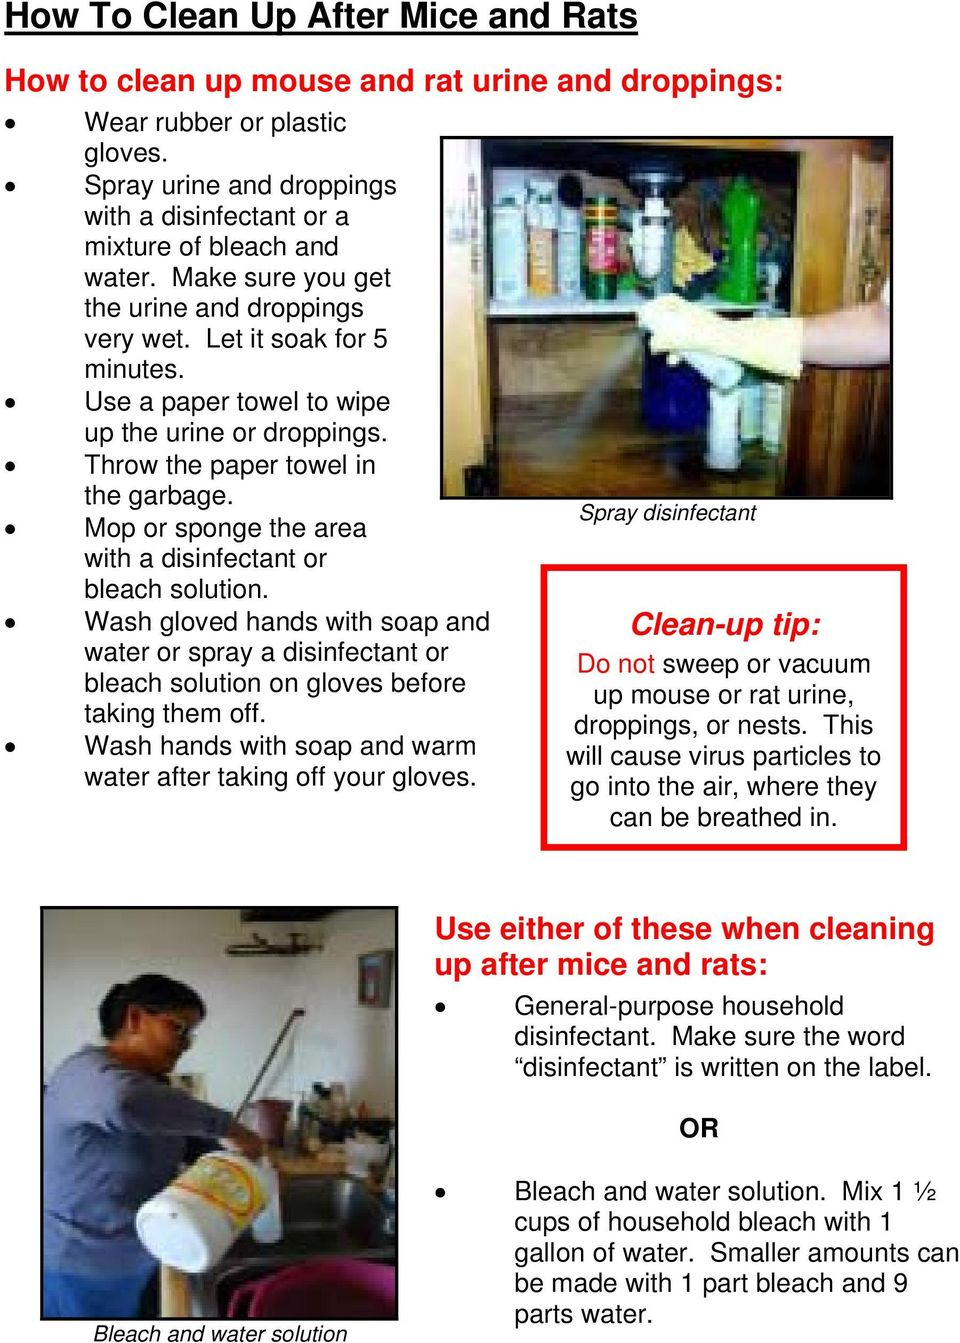 Mop or sponge the area with a disinfectant or bleach solution. Wash gloved hands with soap and water or spray a disinfectant or bleach solution on gloves before taking them off.